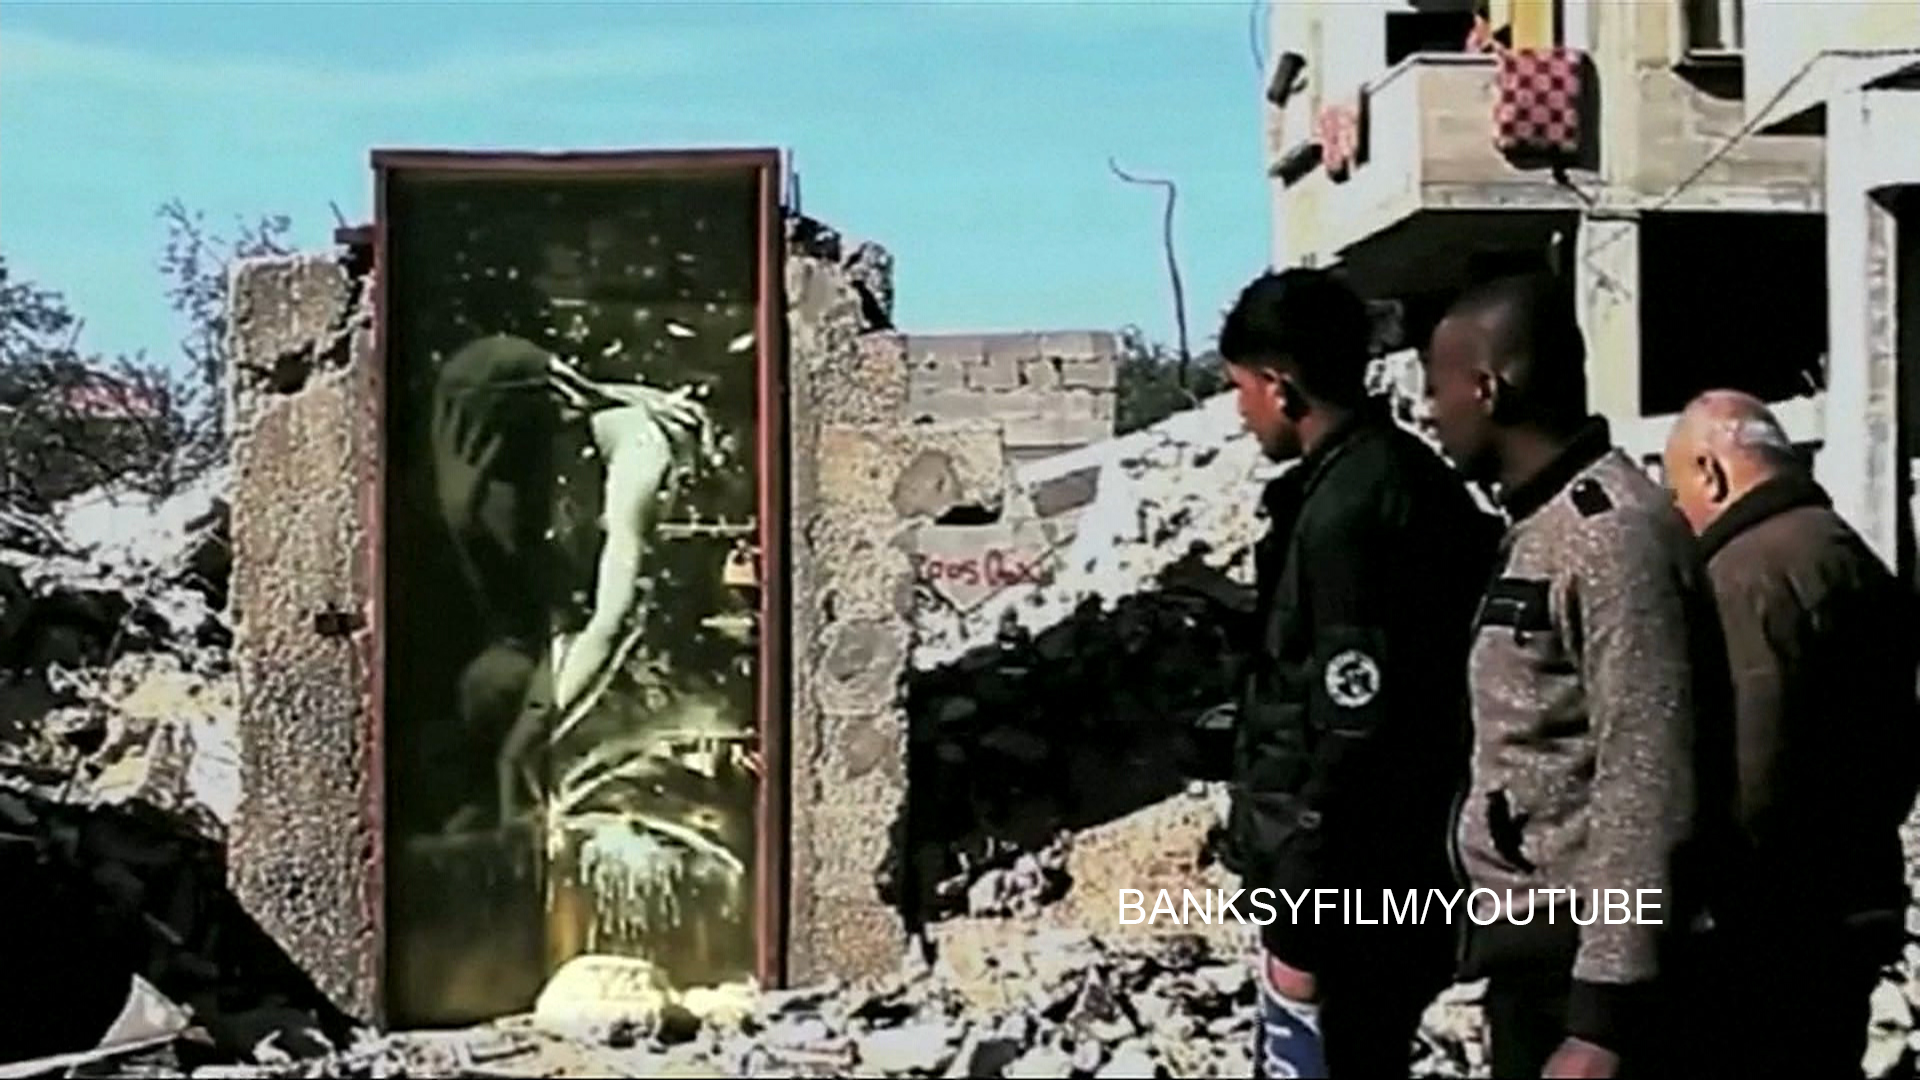 Man in gaza unknowingly sells banksy mural for 175 nbc news for Banksy mural sold